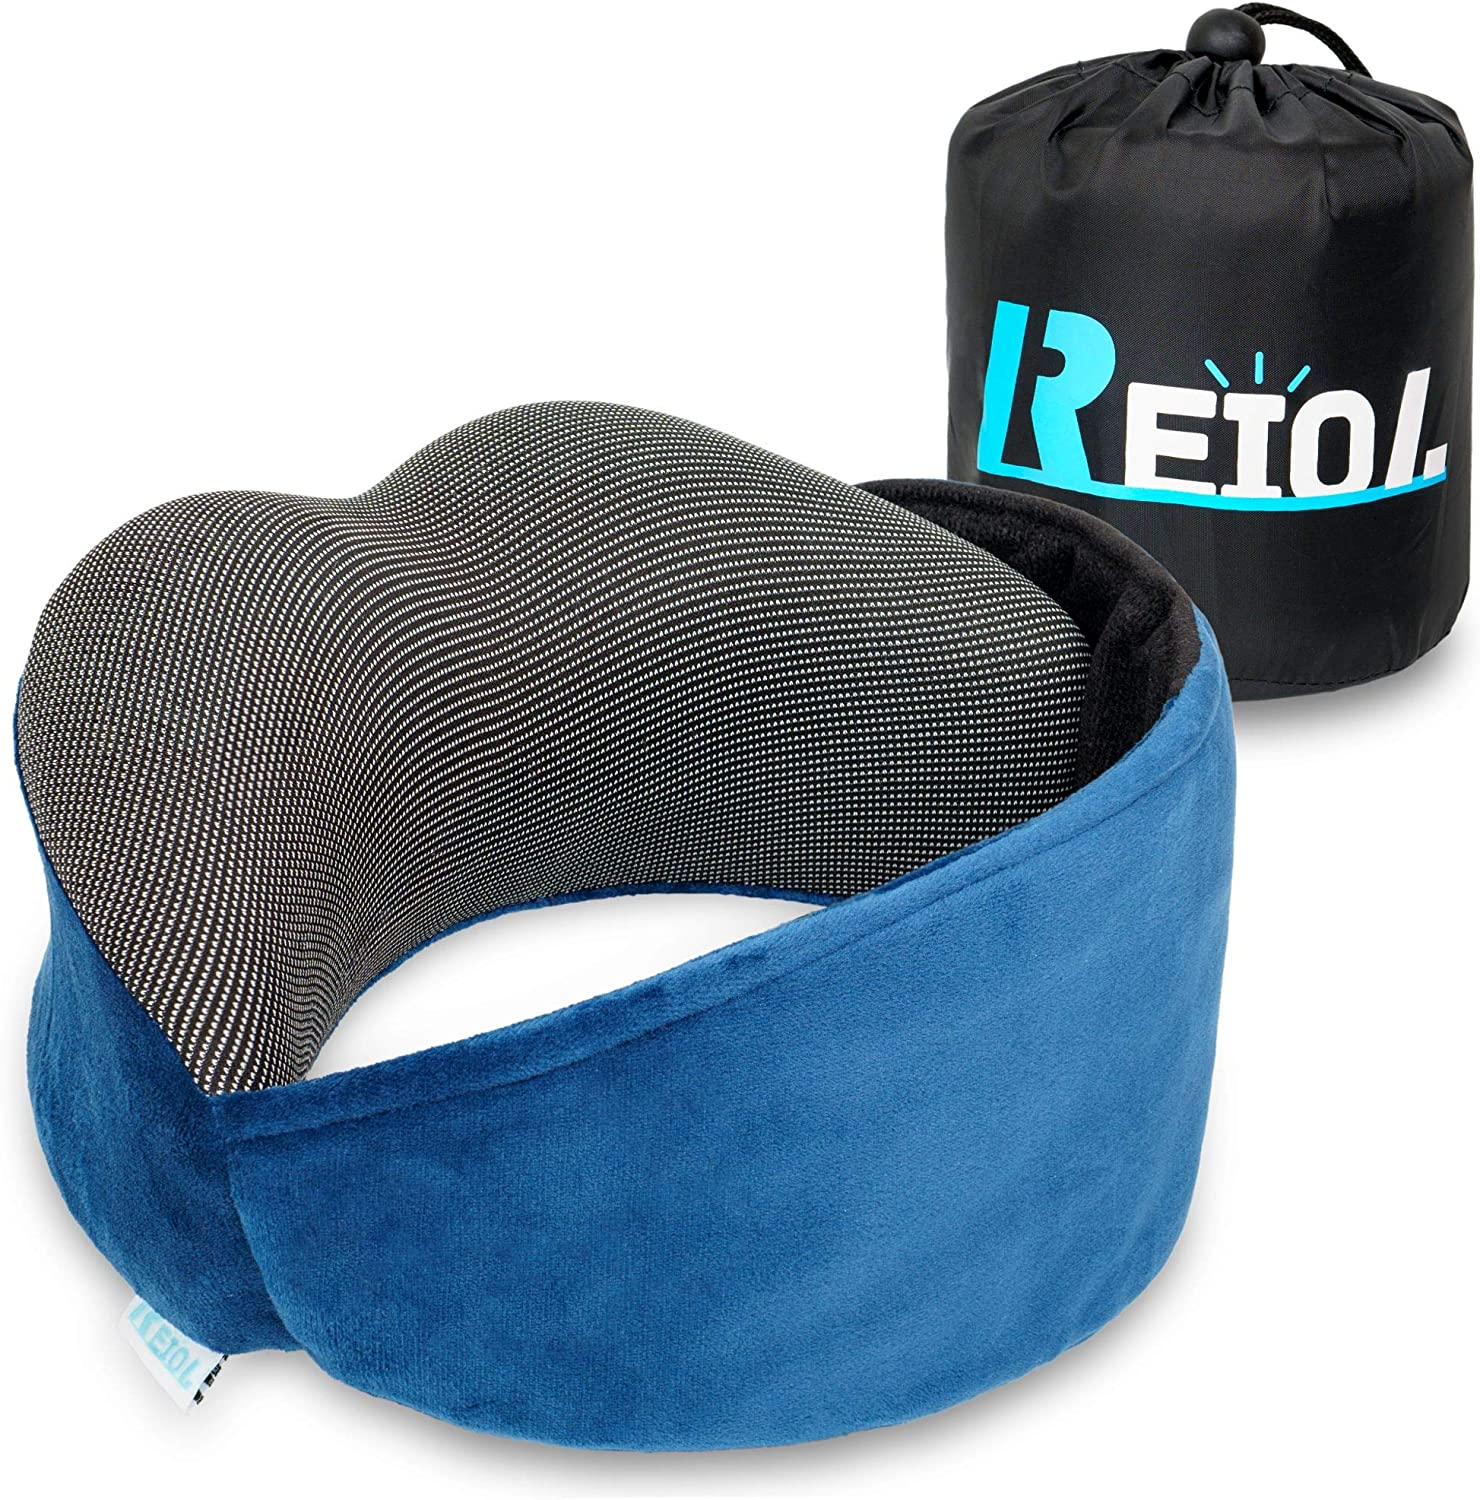 REIOL Travel Pillow 100% Pure Memory 4 Discount is also Baltimore Mall underway Head Foam- Ways for Neck